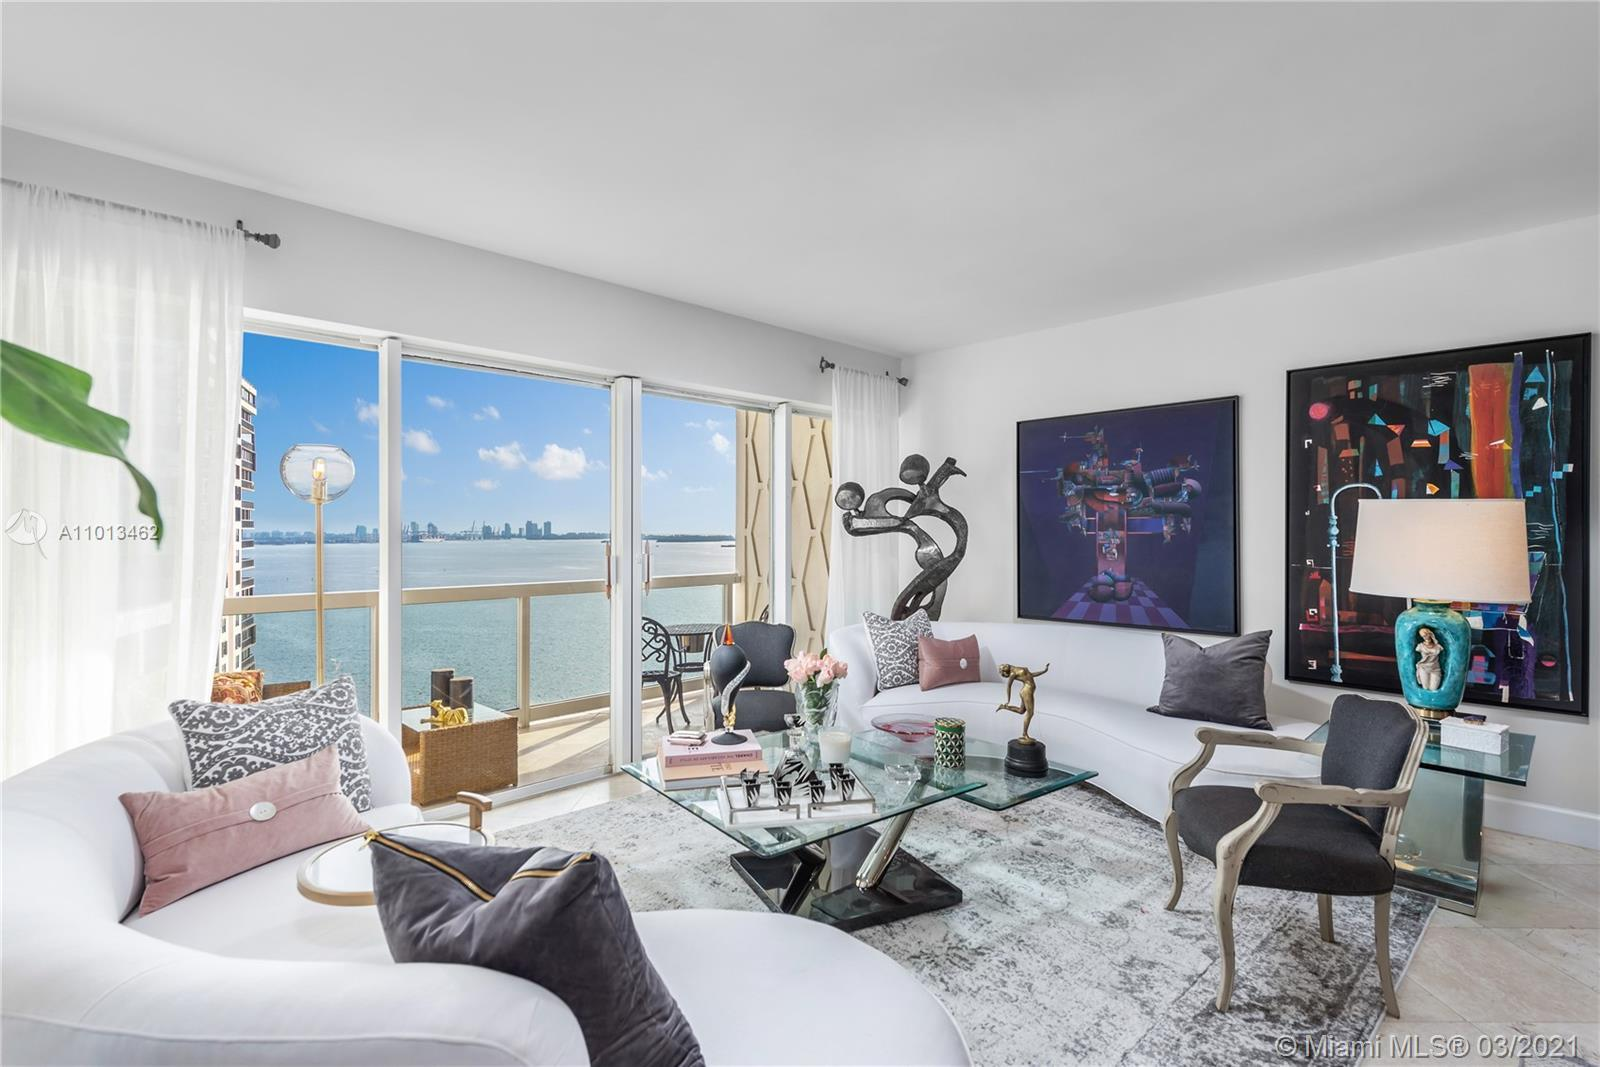 Breathtaking water views from this updated residence at Brickell Townhouse. With over 1,000 sq ft, t